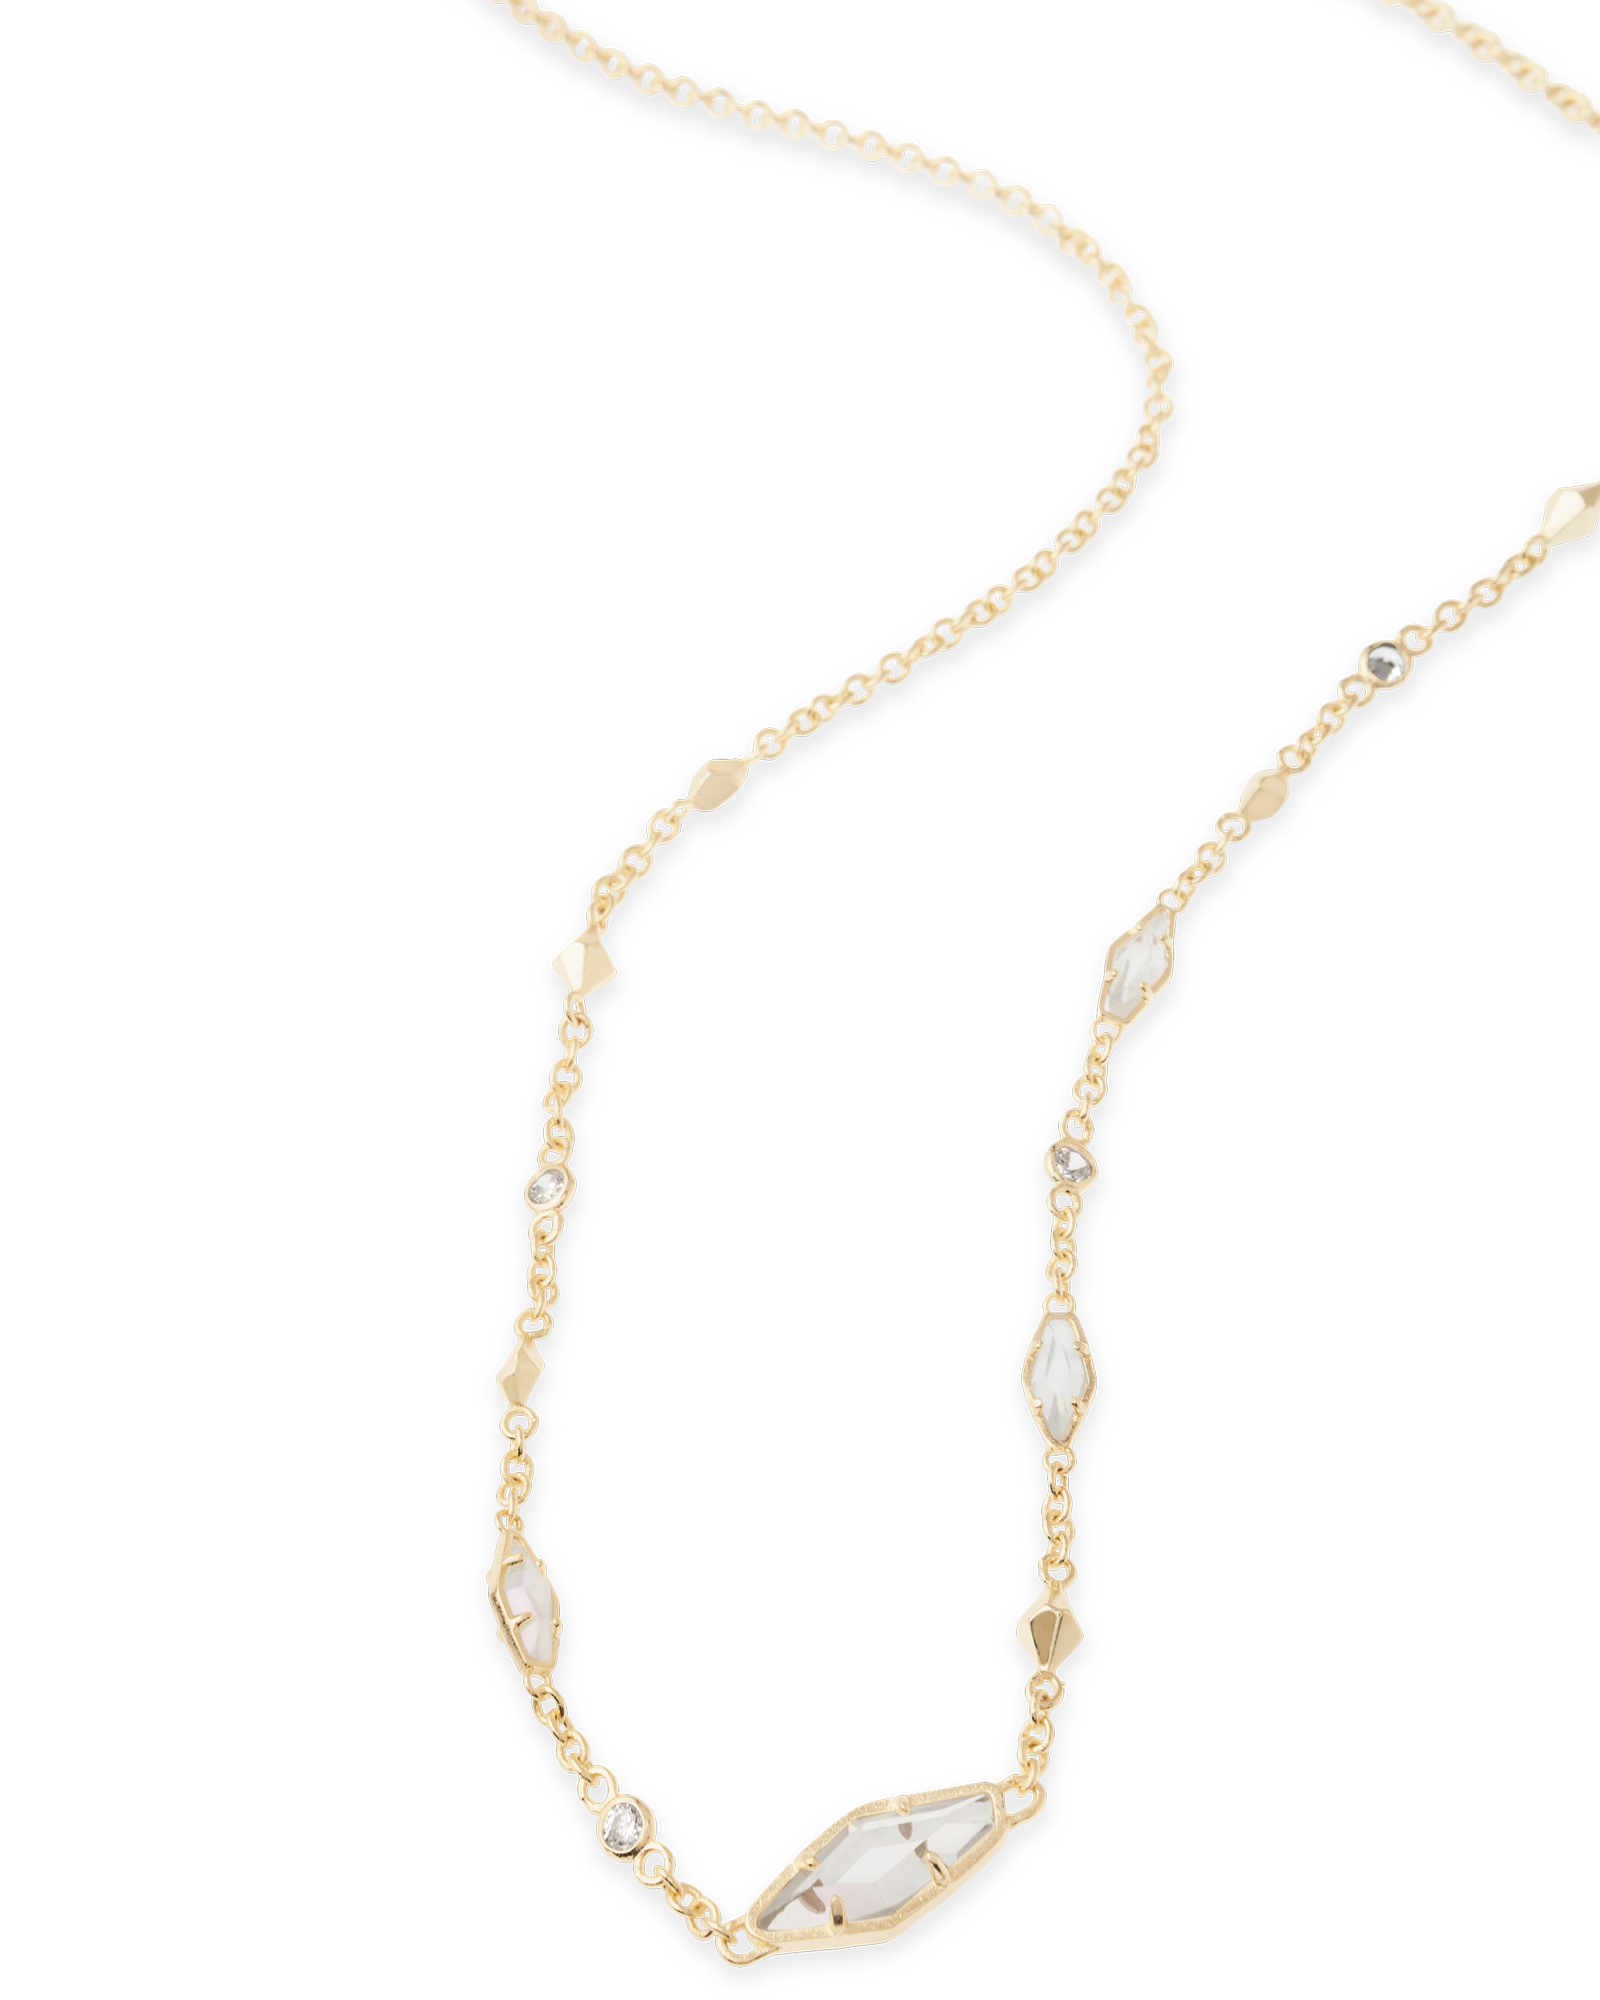 10e33ca38843bc This gold choker necklace from Kendra Scott is the perfect layering piece  this season. Custom